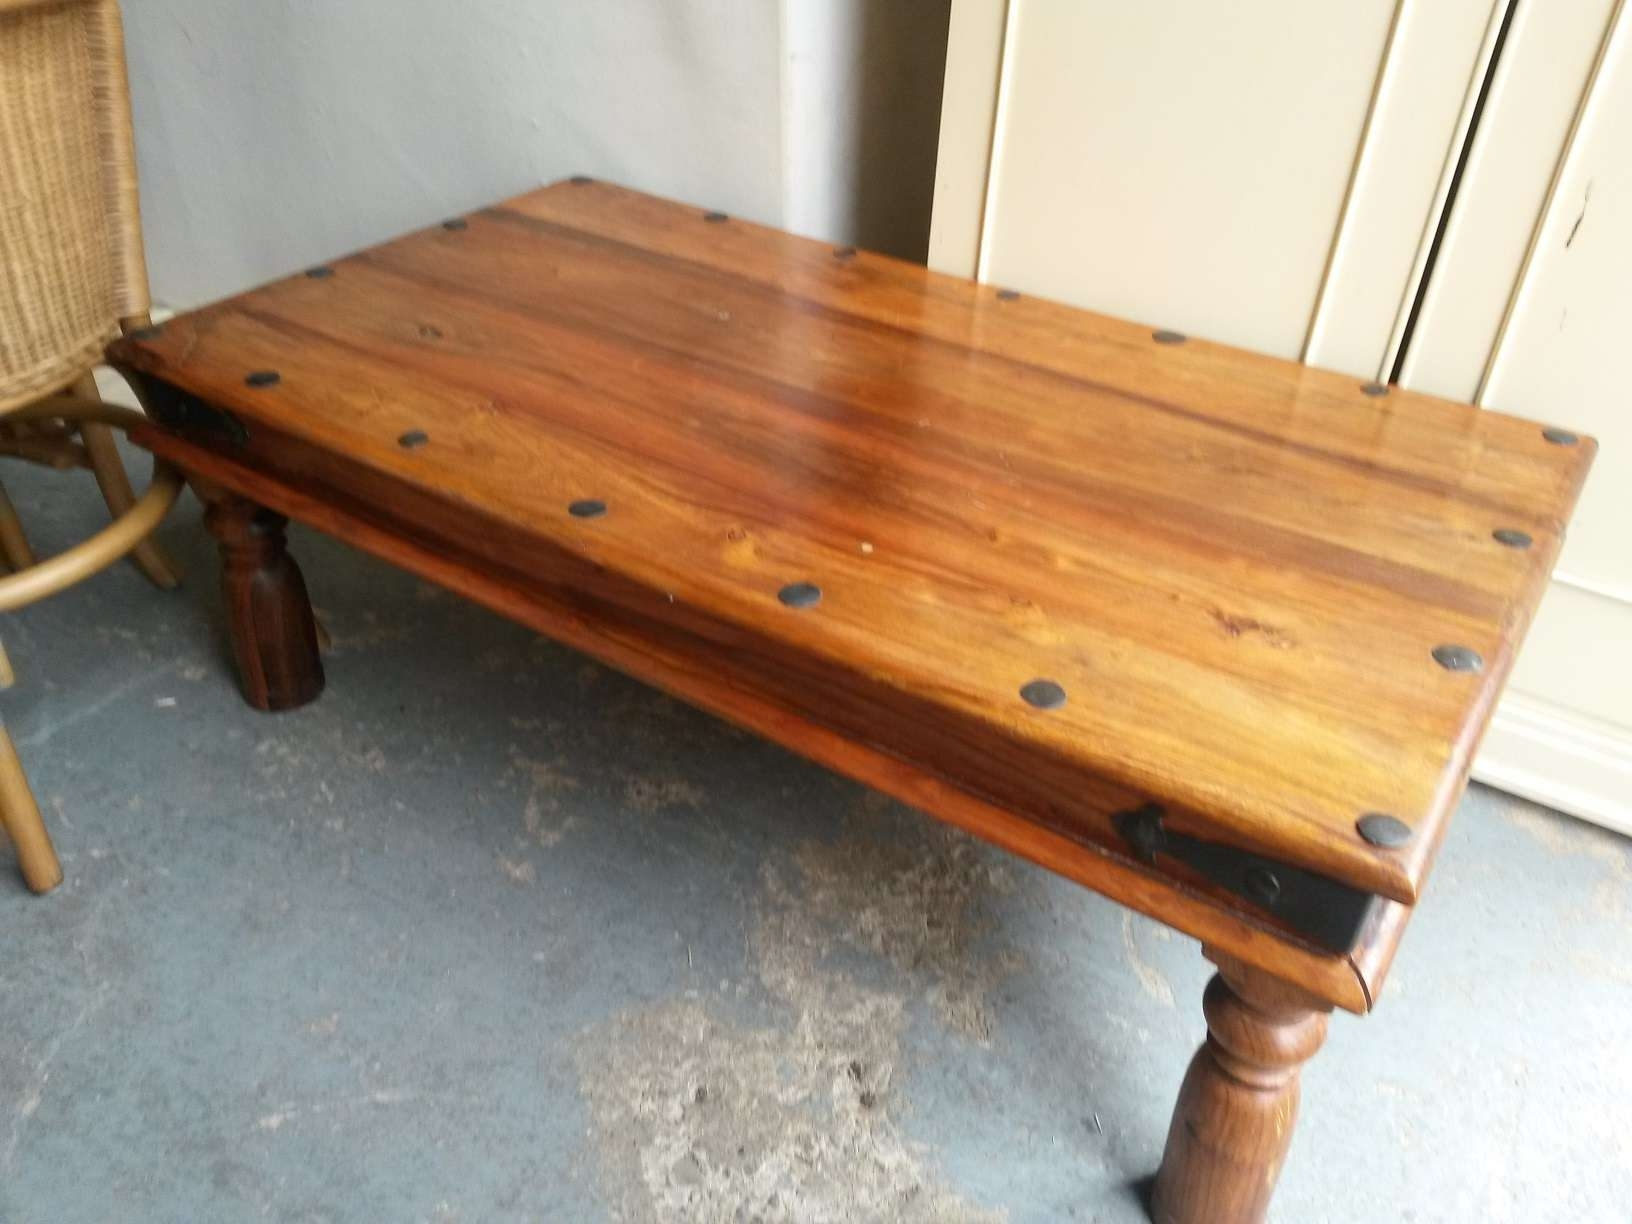 Widely Used Indian Coffee Tables In Decoration In Indian Coffee Table With Sold Indian Sheesham Coffee (View 6 of 20)